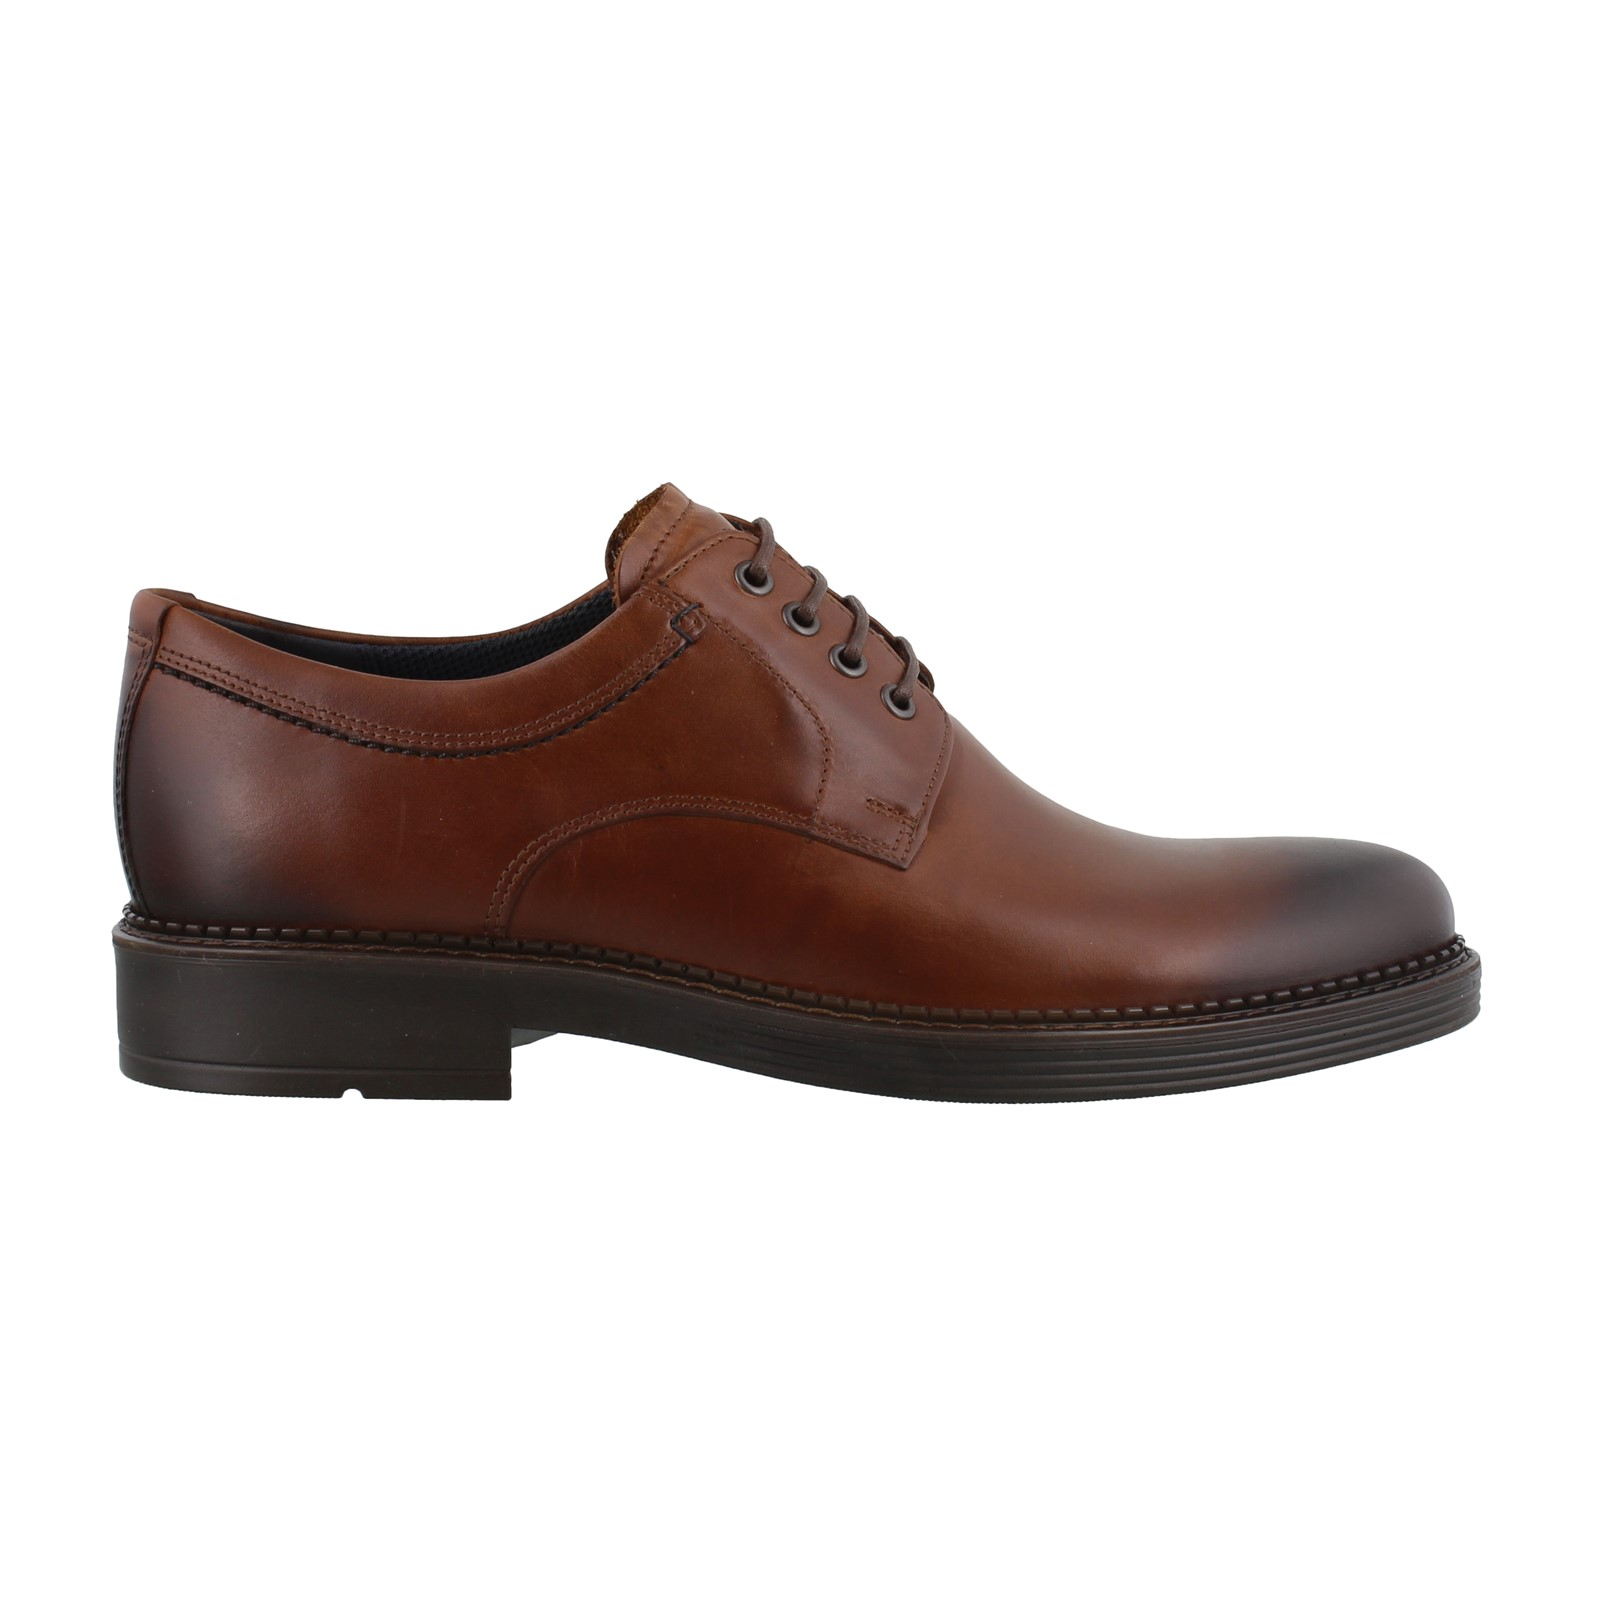 Men's Ecco, Newcastle Classic Tie Lace Up Shoes